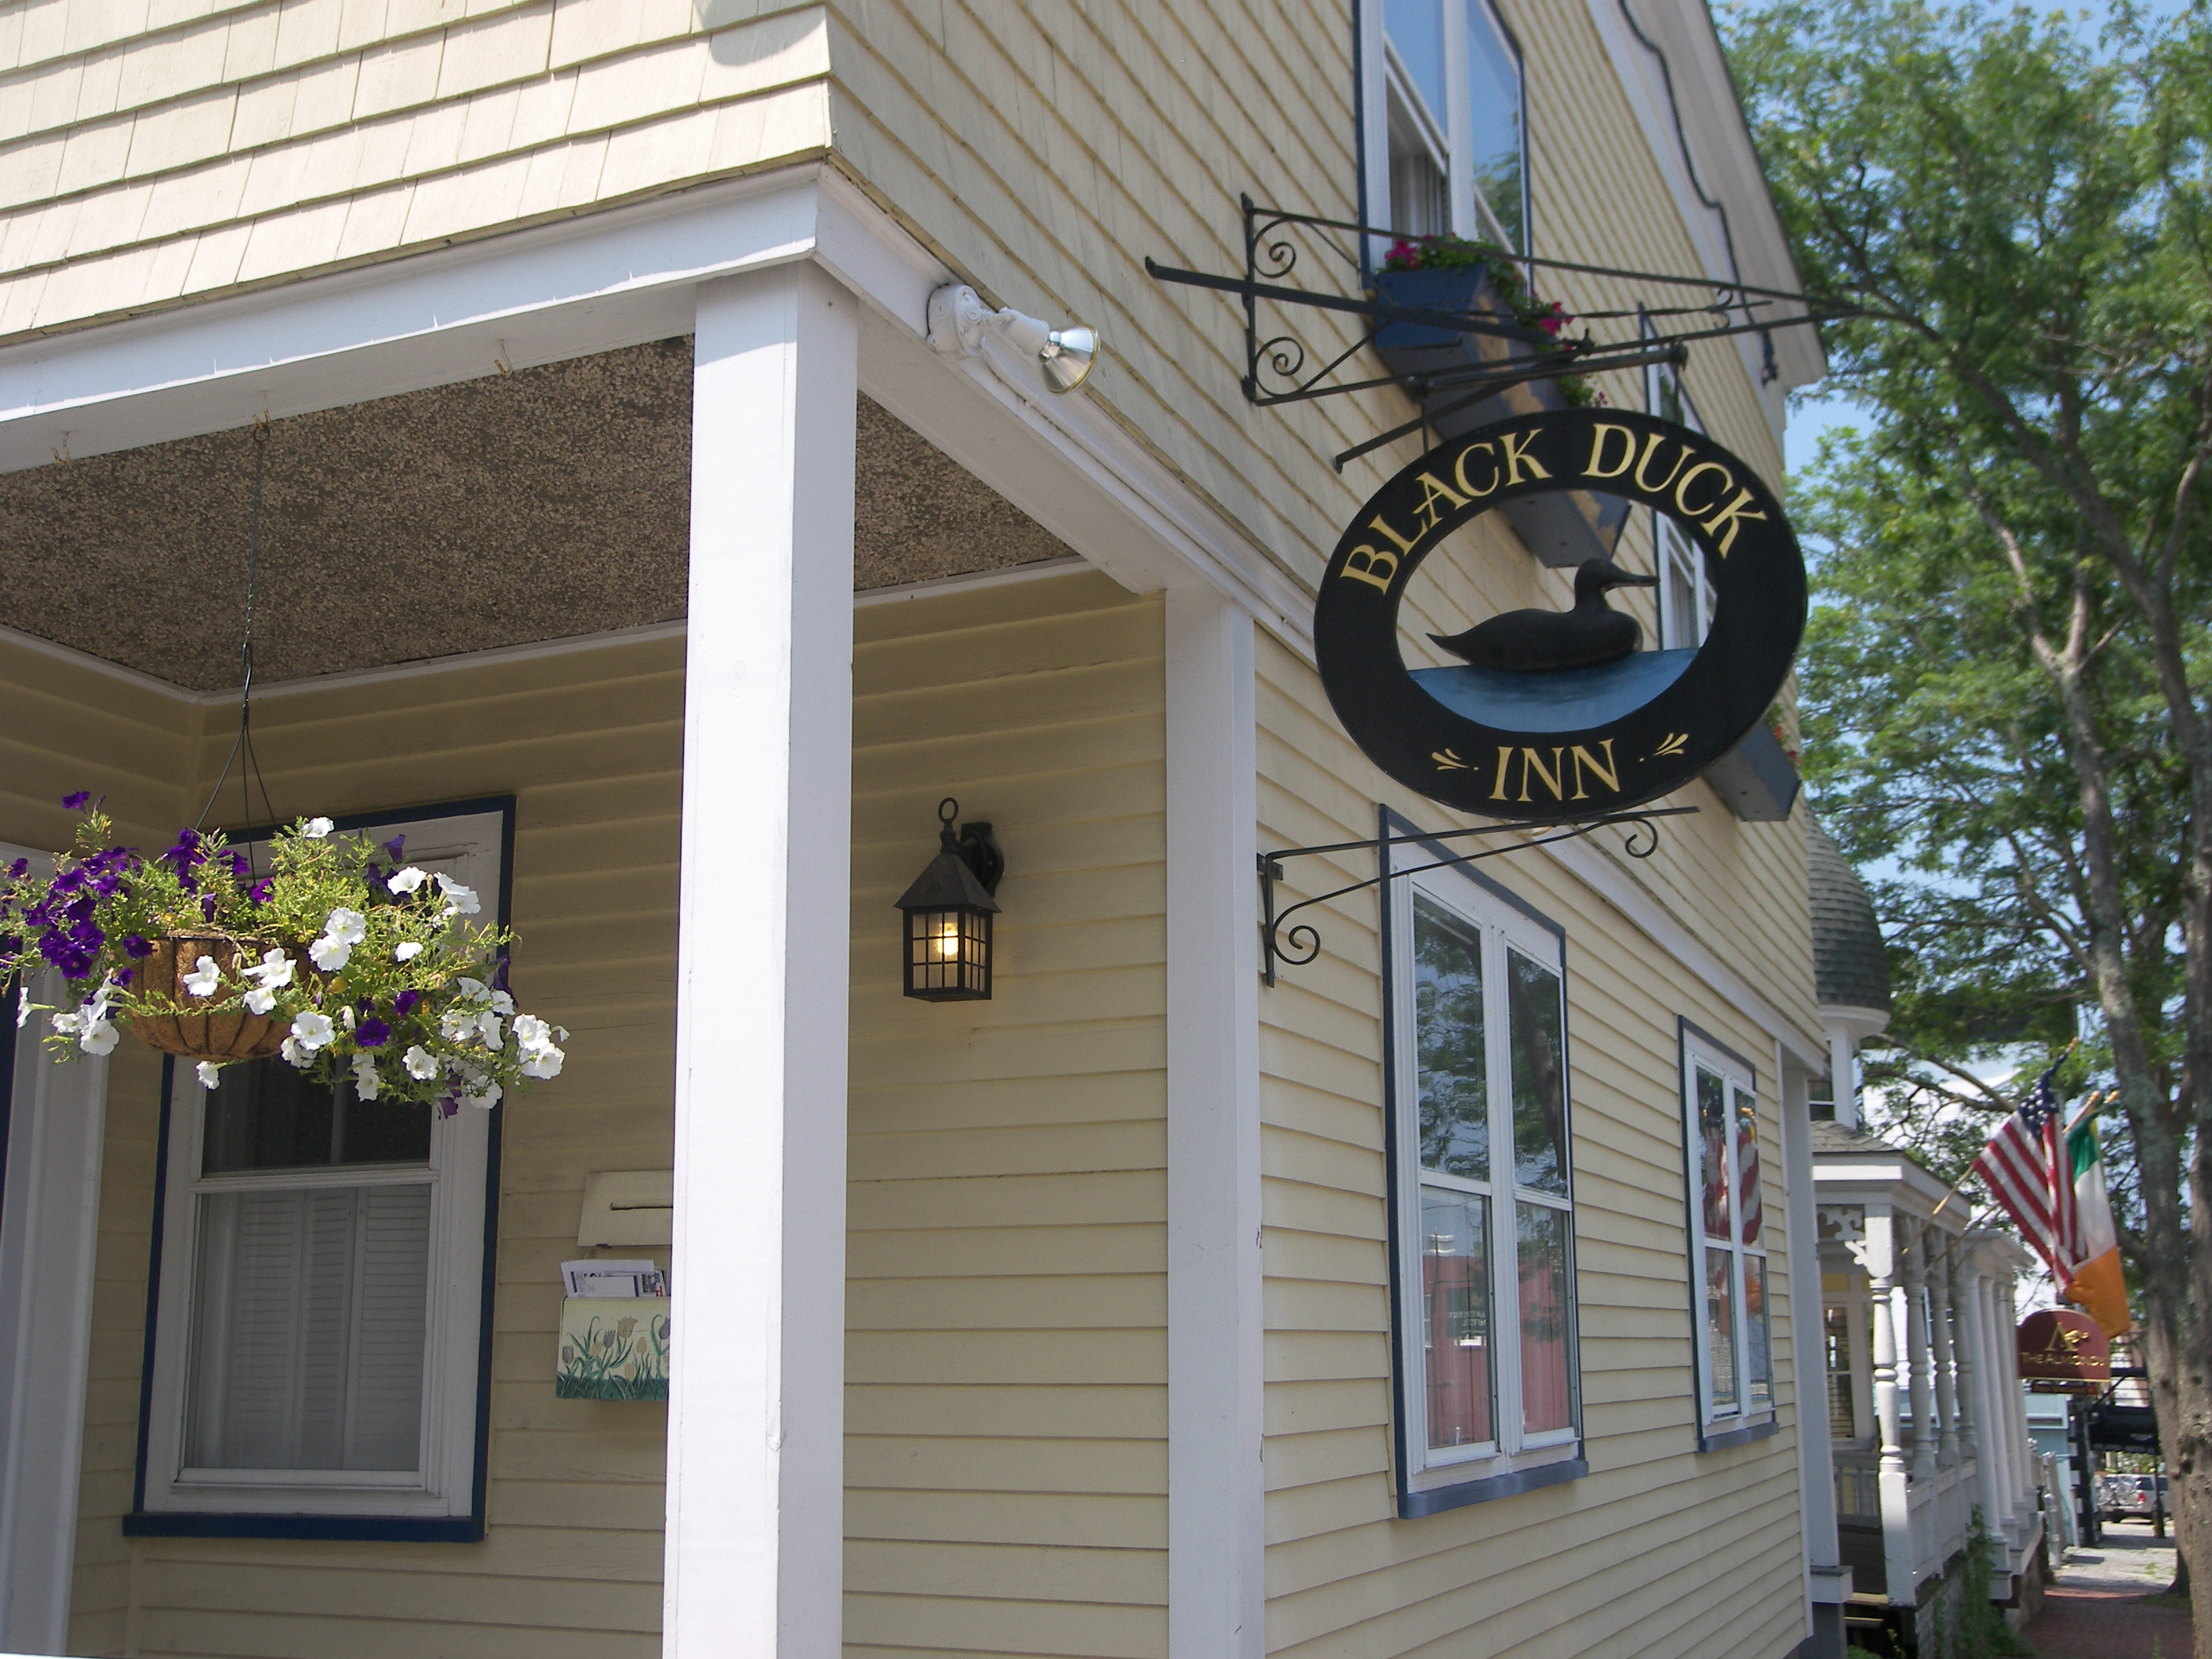 Black Duck Inn